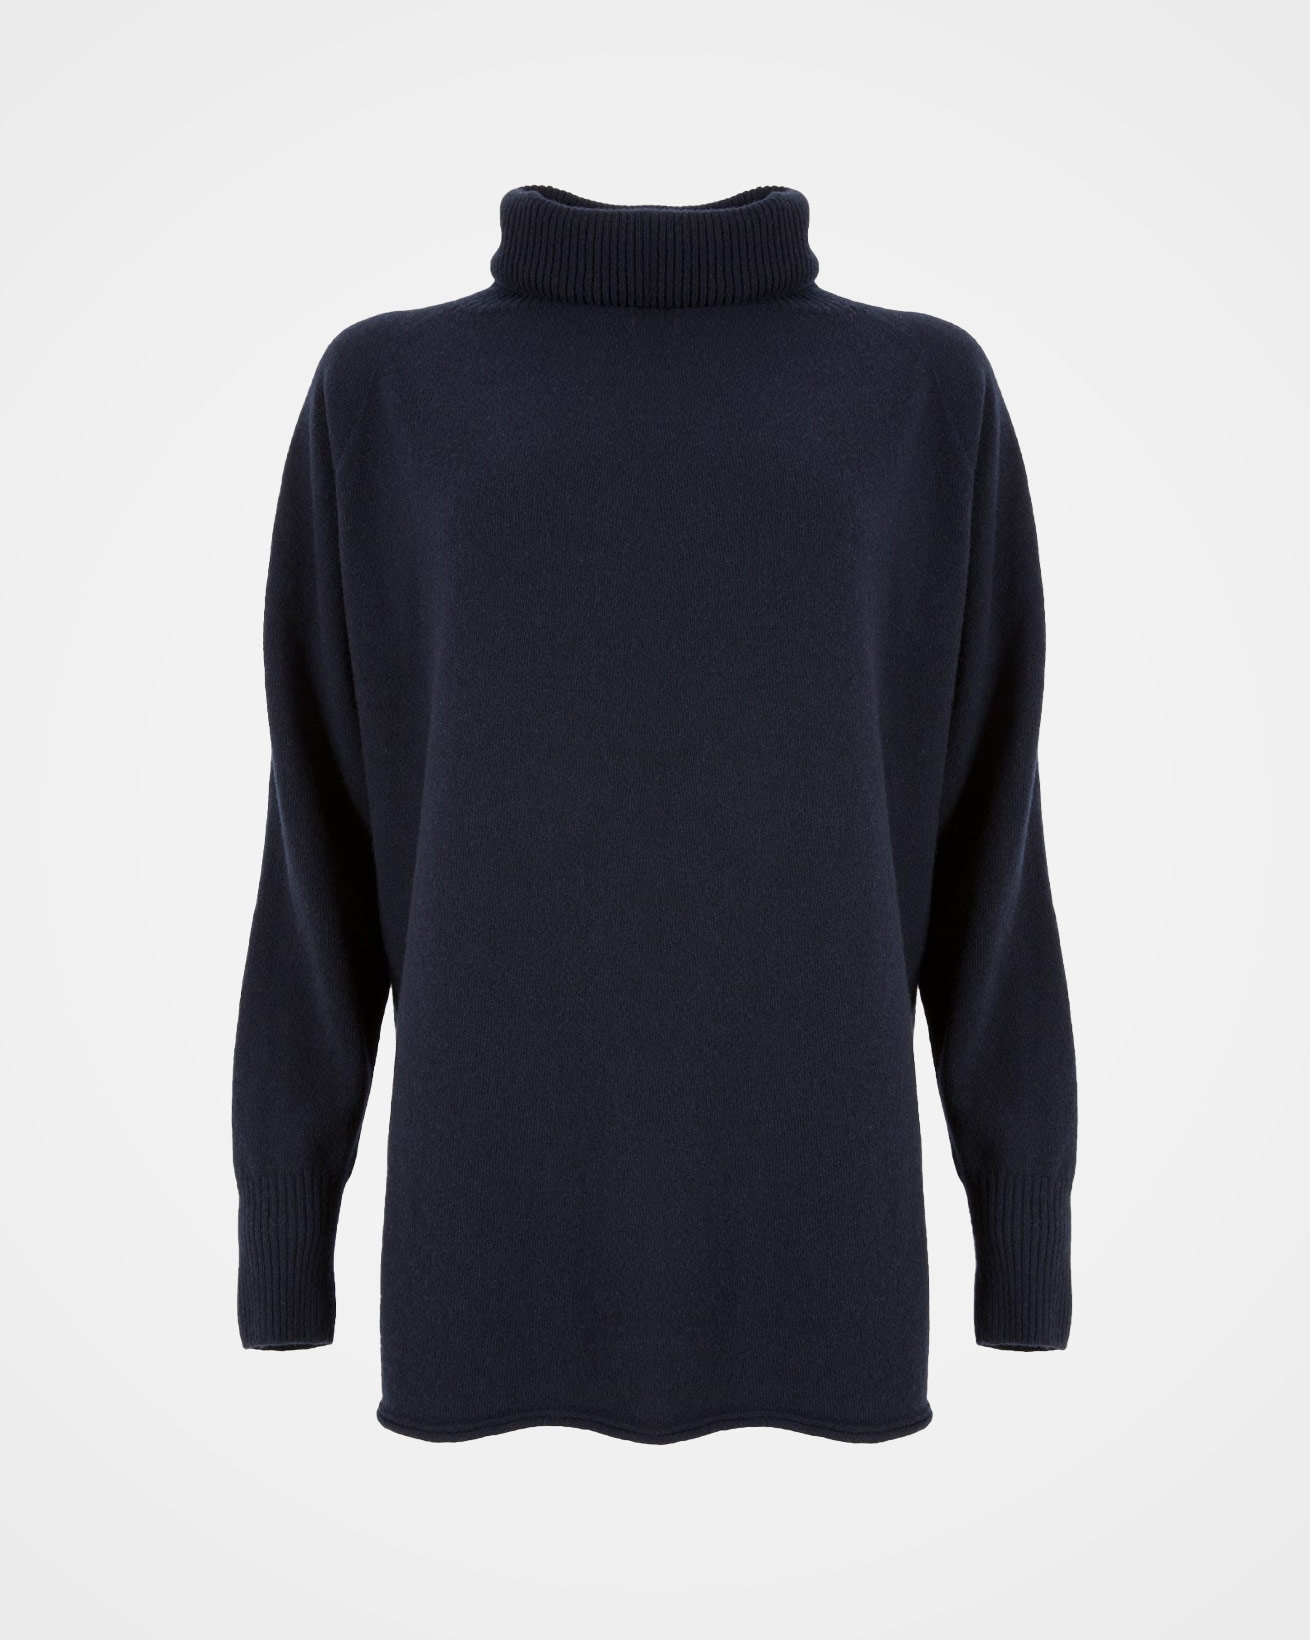 7505_geelong-slouch-roll-neck_dark-navy_front.jpg